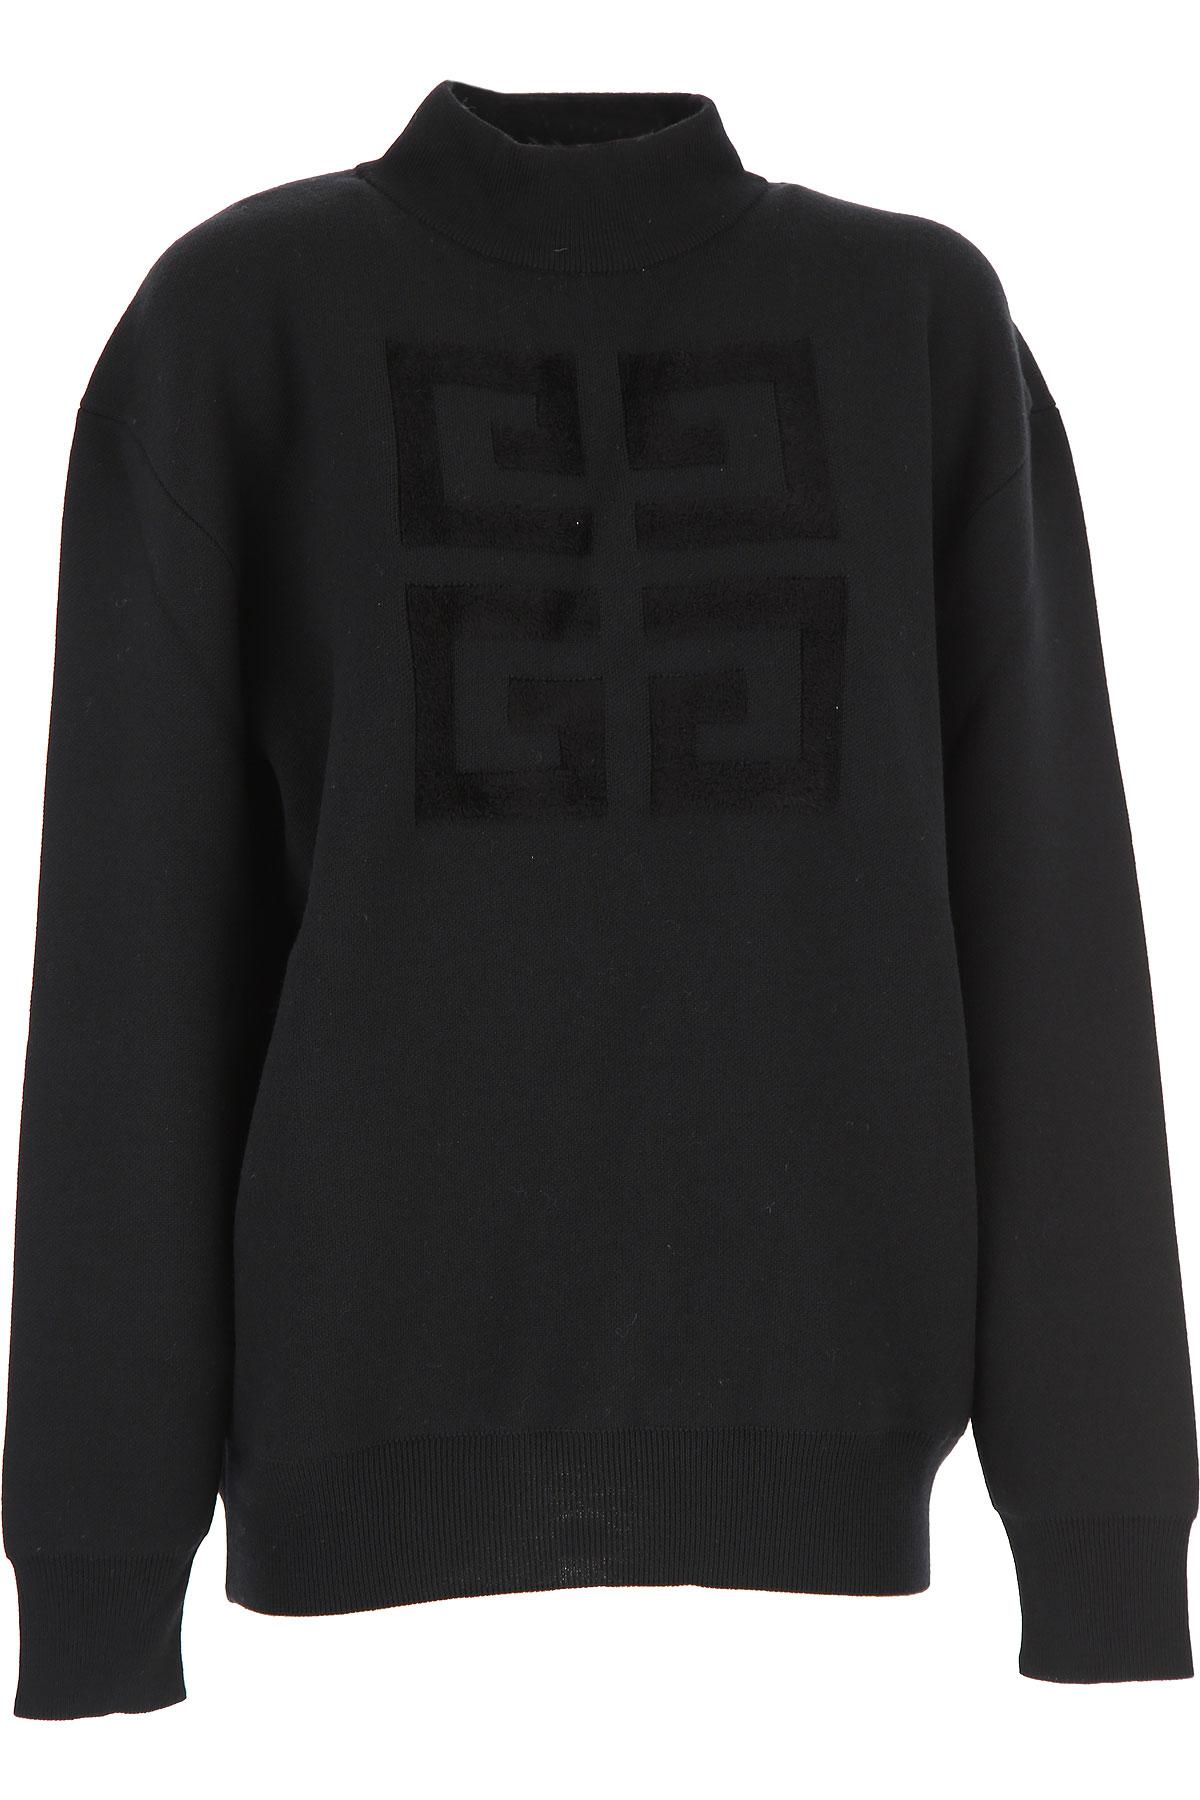 Lyst - Givenchy Sweater For Women Jumper On Sale in White 1f74b2424